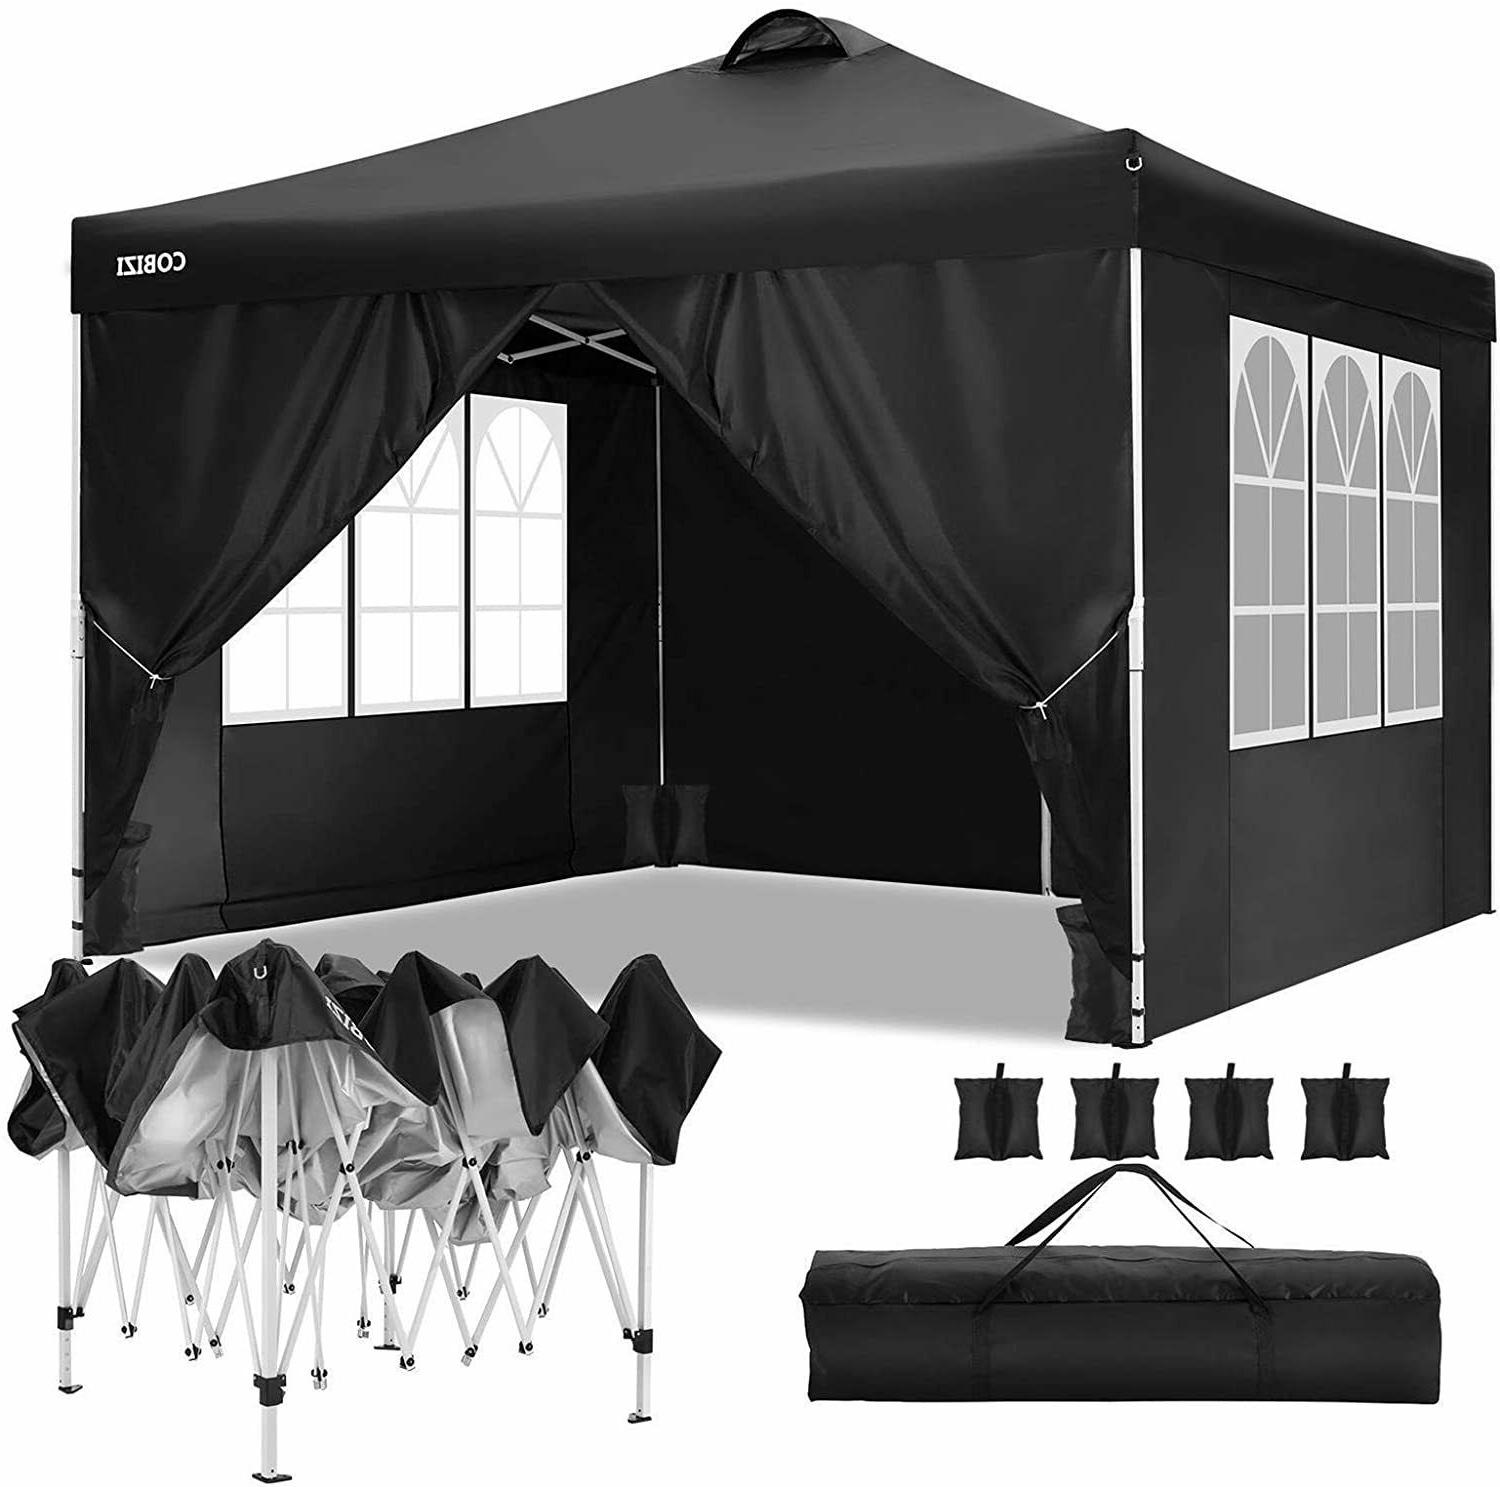 Pop-up Outdoor Gazebo Camping Tent w/ Air Vent+4